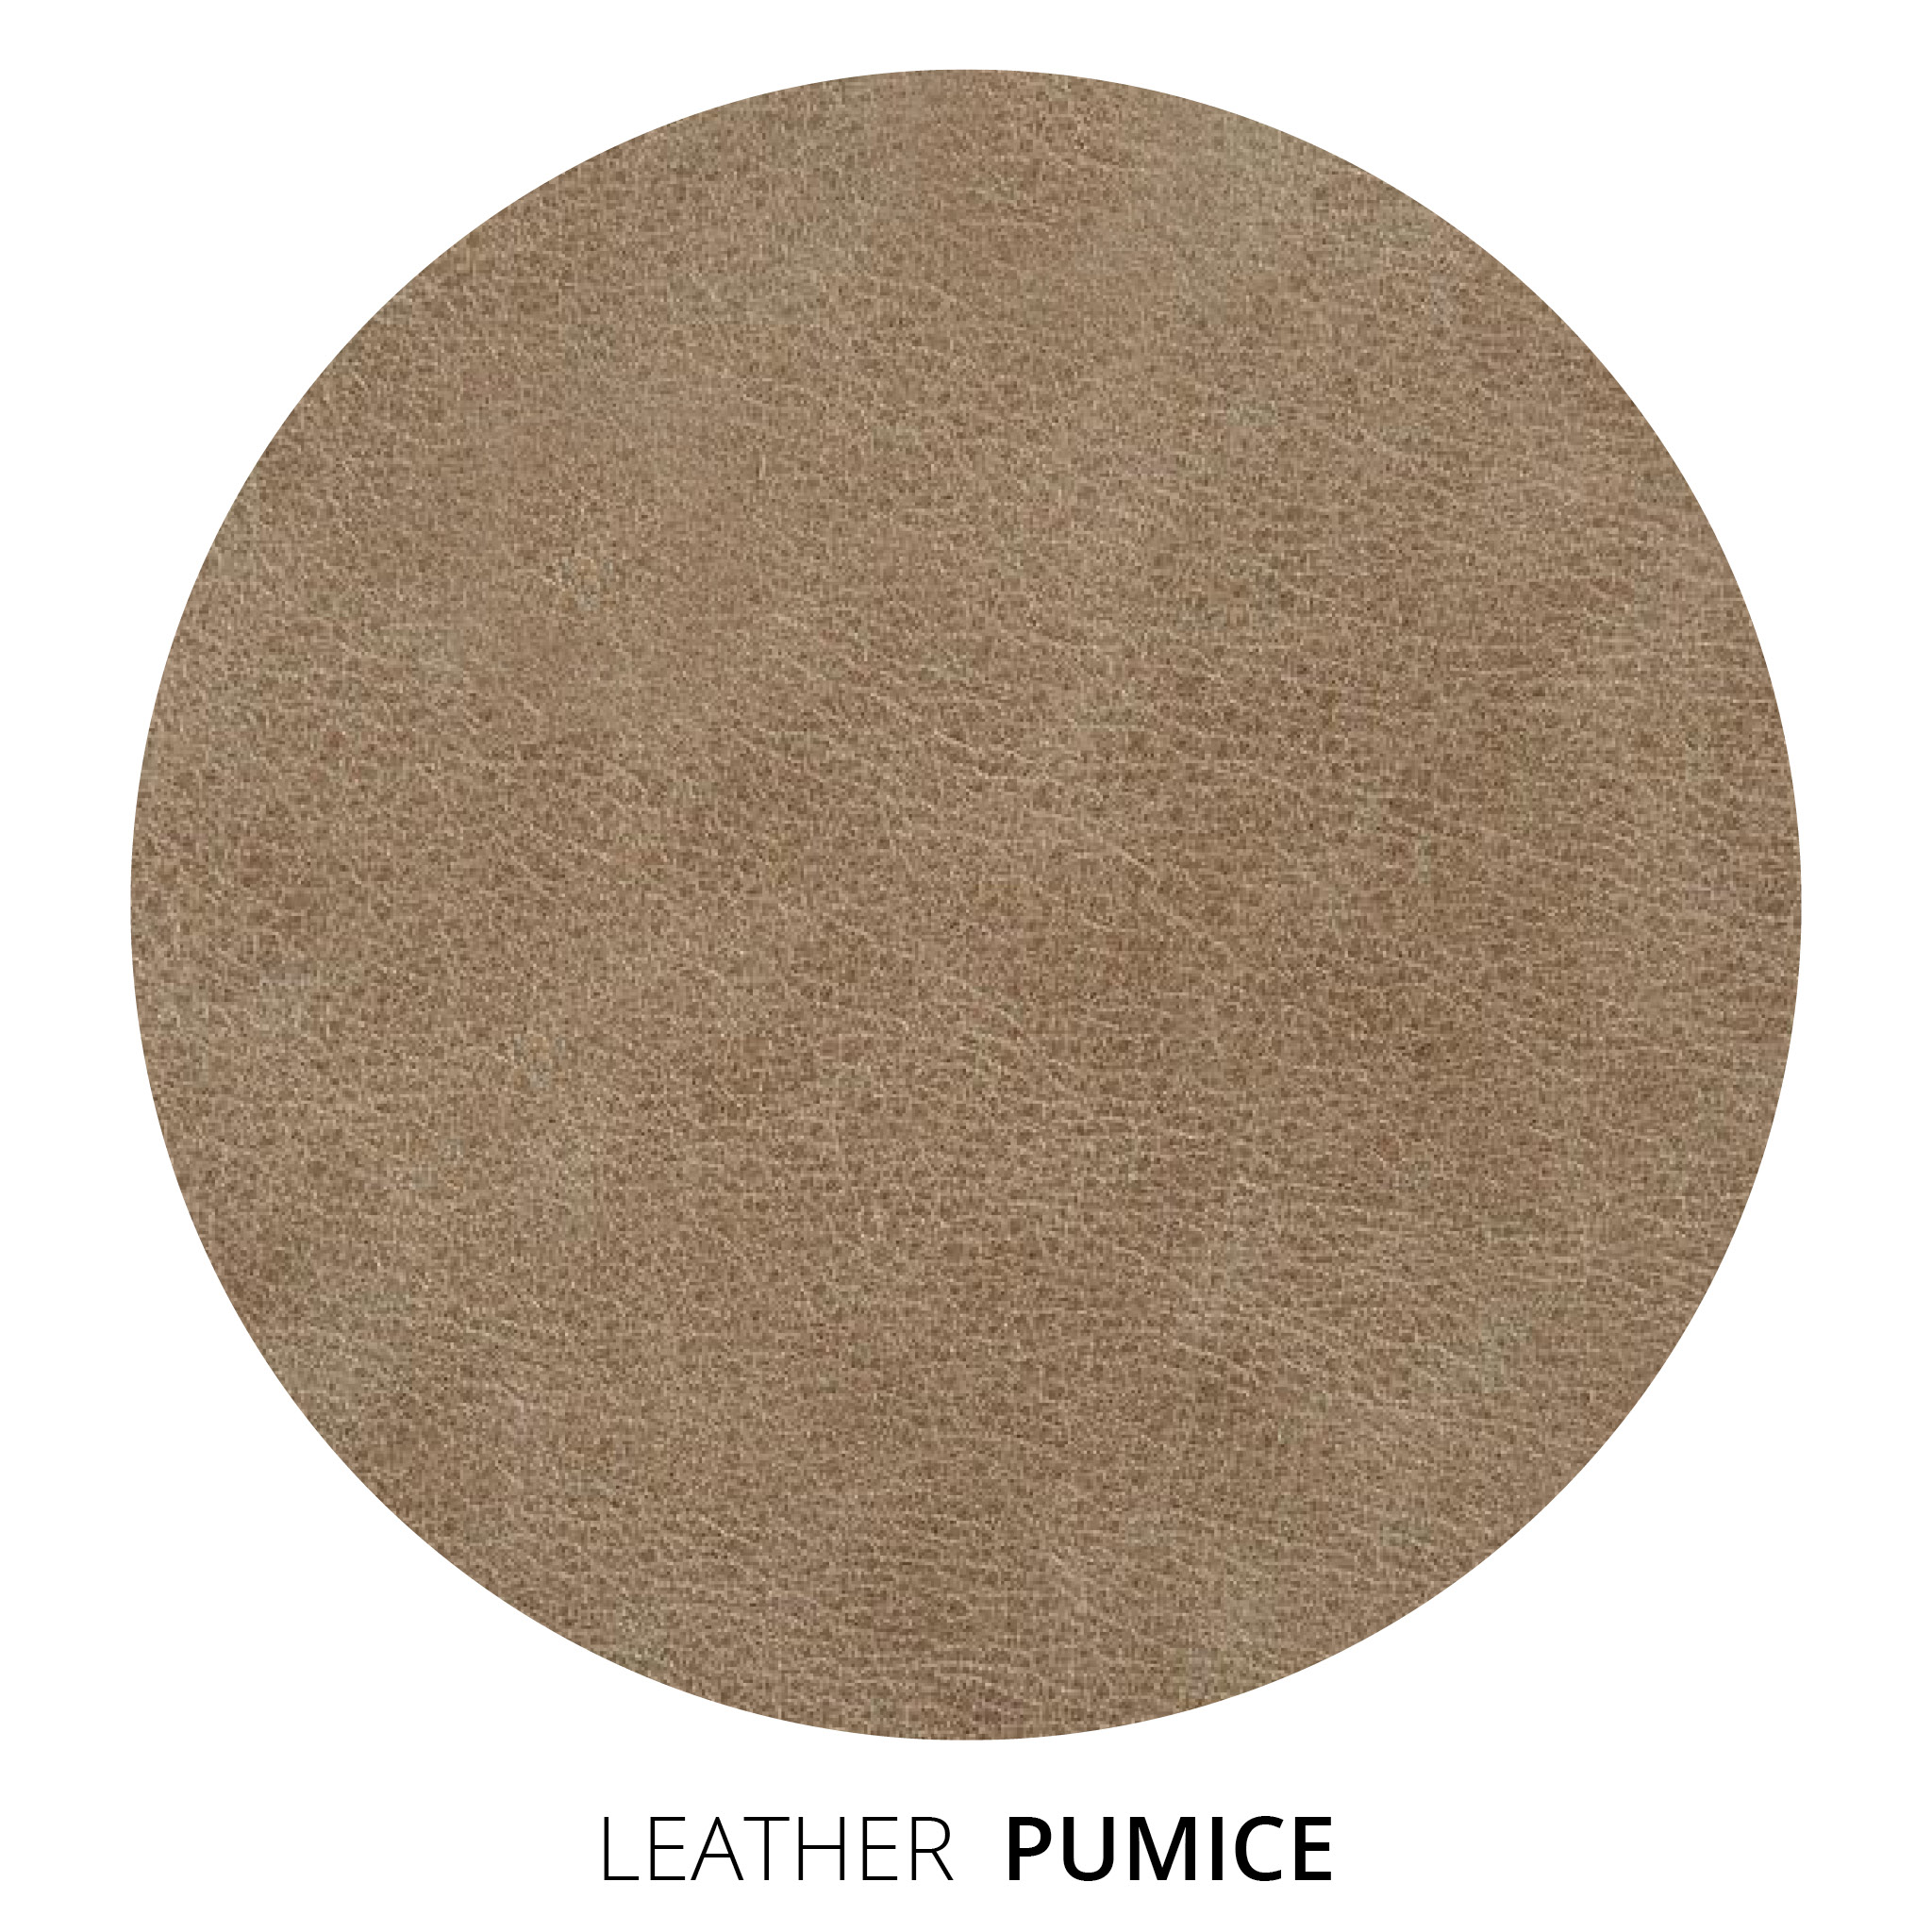 Pumice Leather Swatch